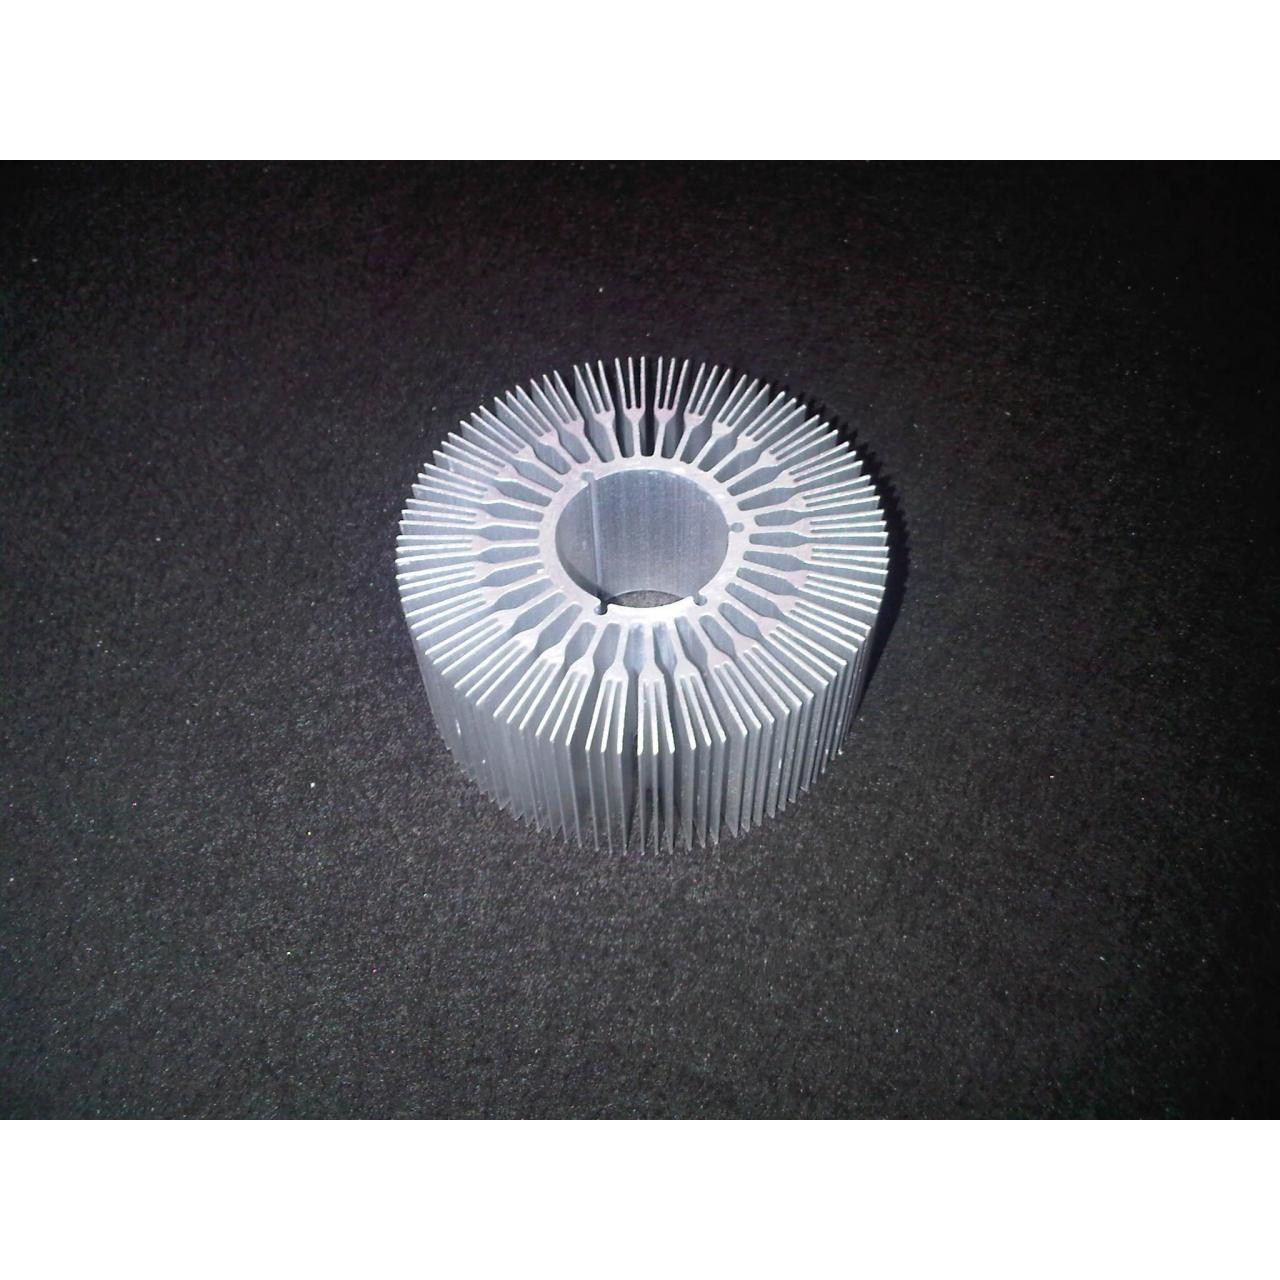 Quality Component for LED Lamp Products 90mm Heat Sink for sale